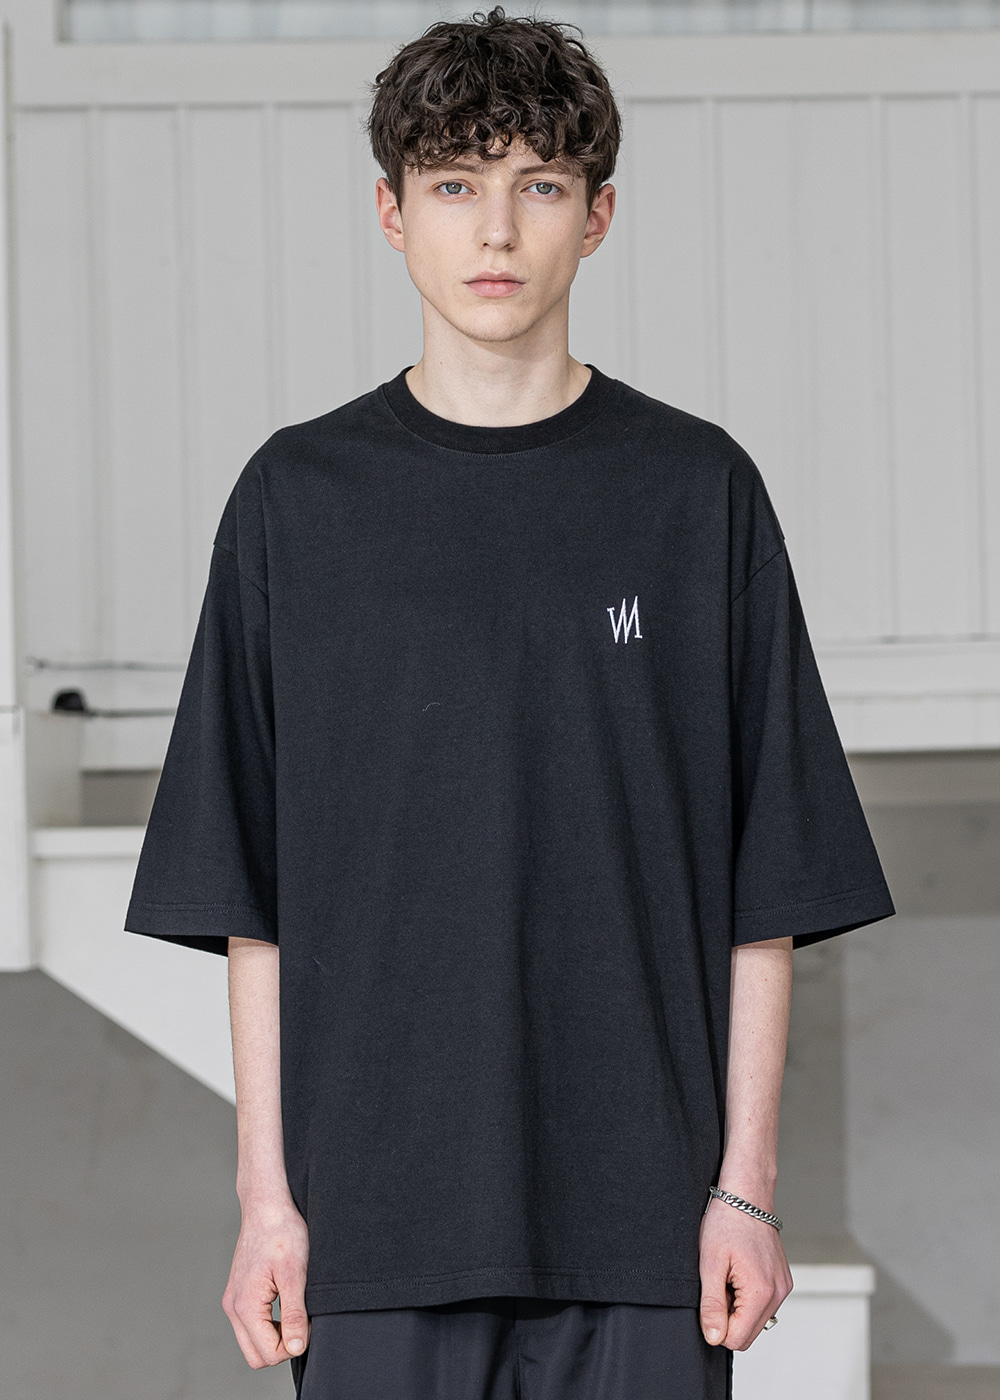 SIGNATURE OVERSIZED T-SHIRTS MSZTS004-BK